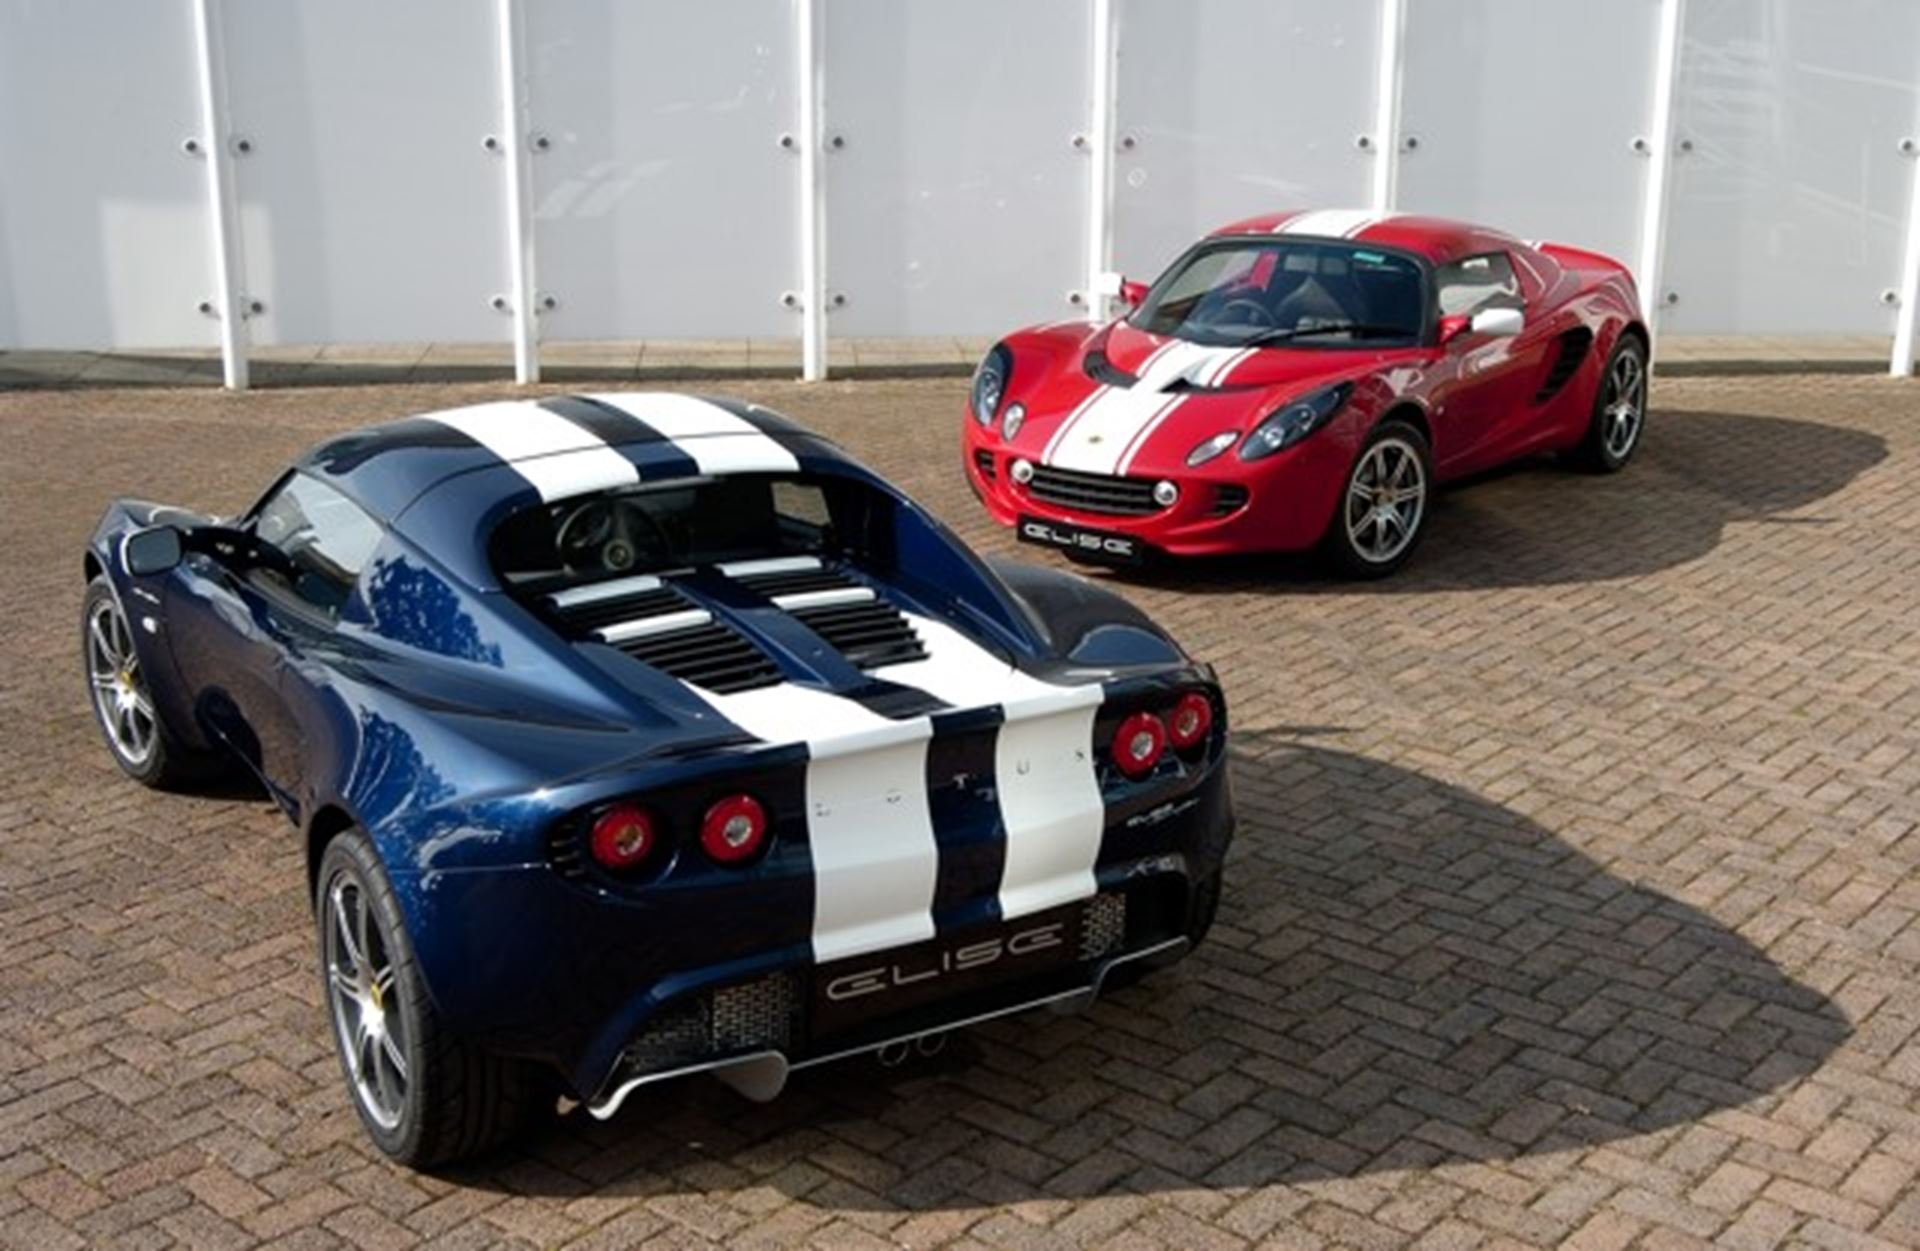 Lotus Elise South Africa Car Show1